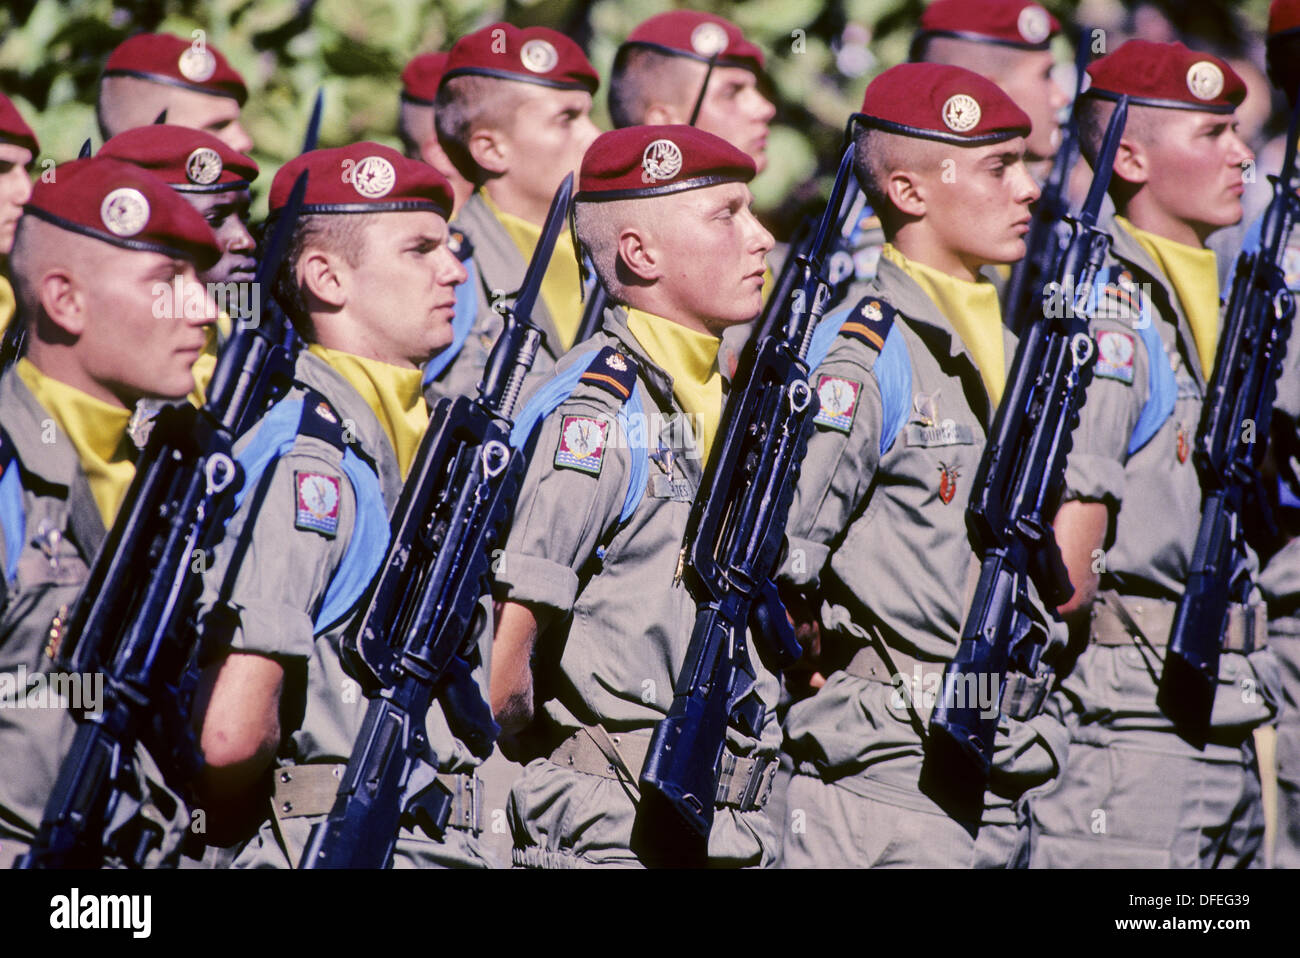 The Fourteenth of July military parade. City of Saint Denis (capital). Reunion Island. Indian ocean. France. - Stock Image